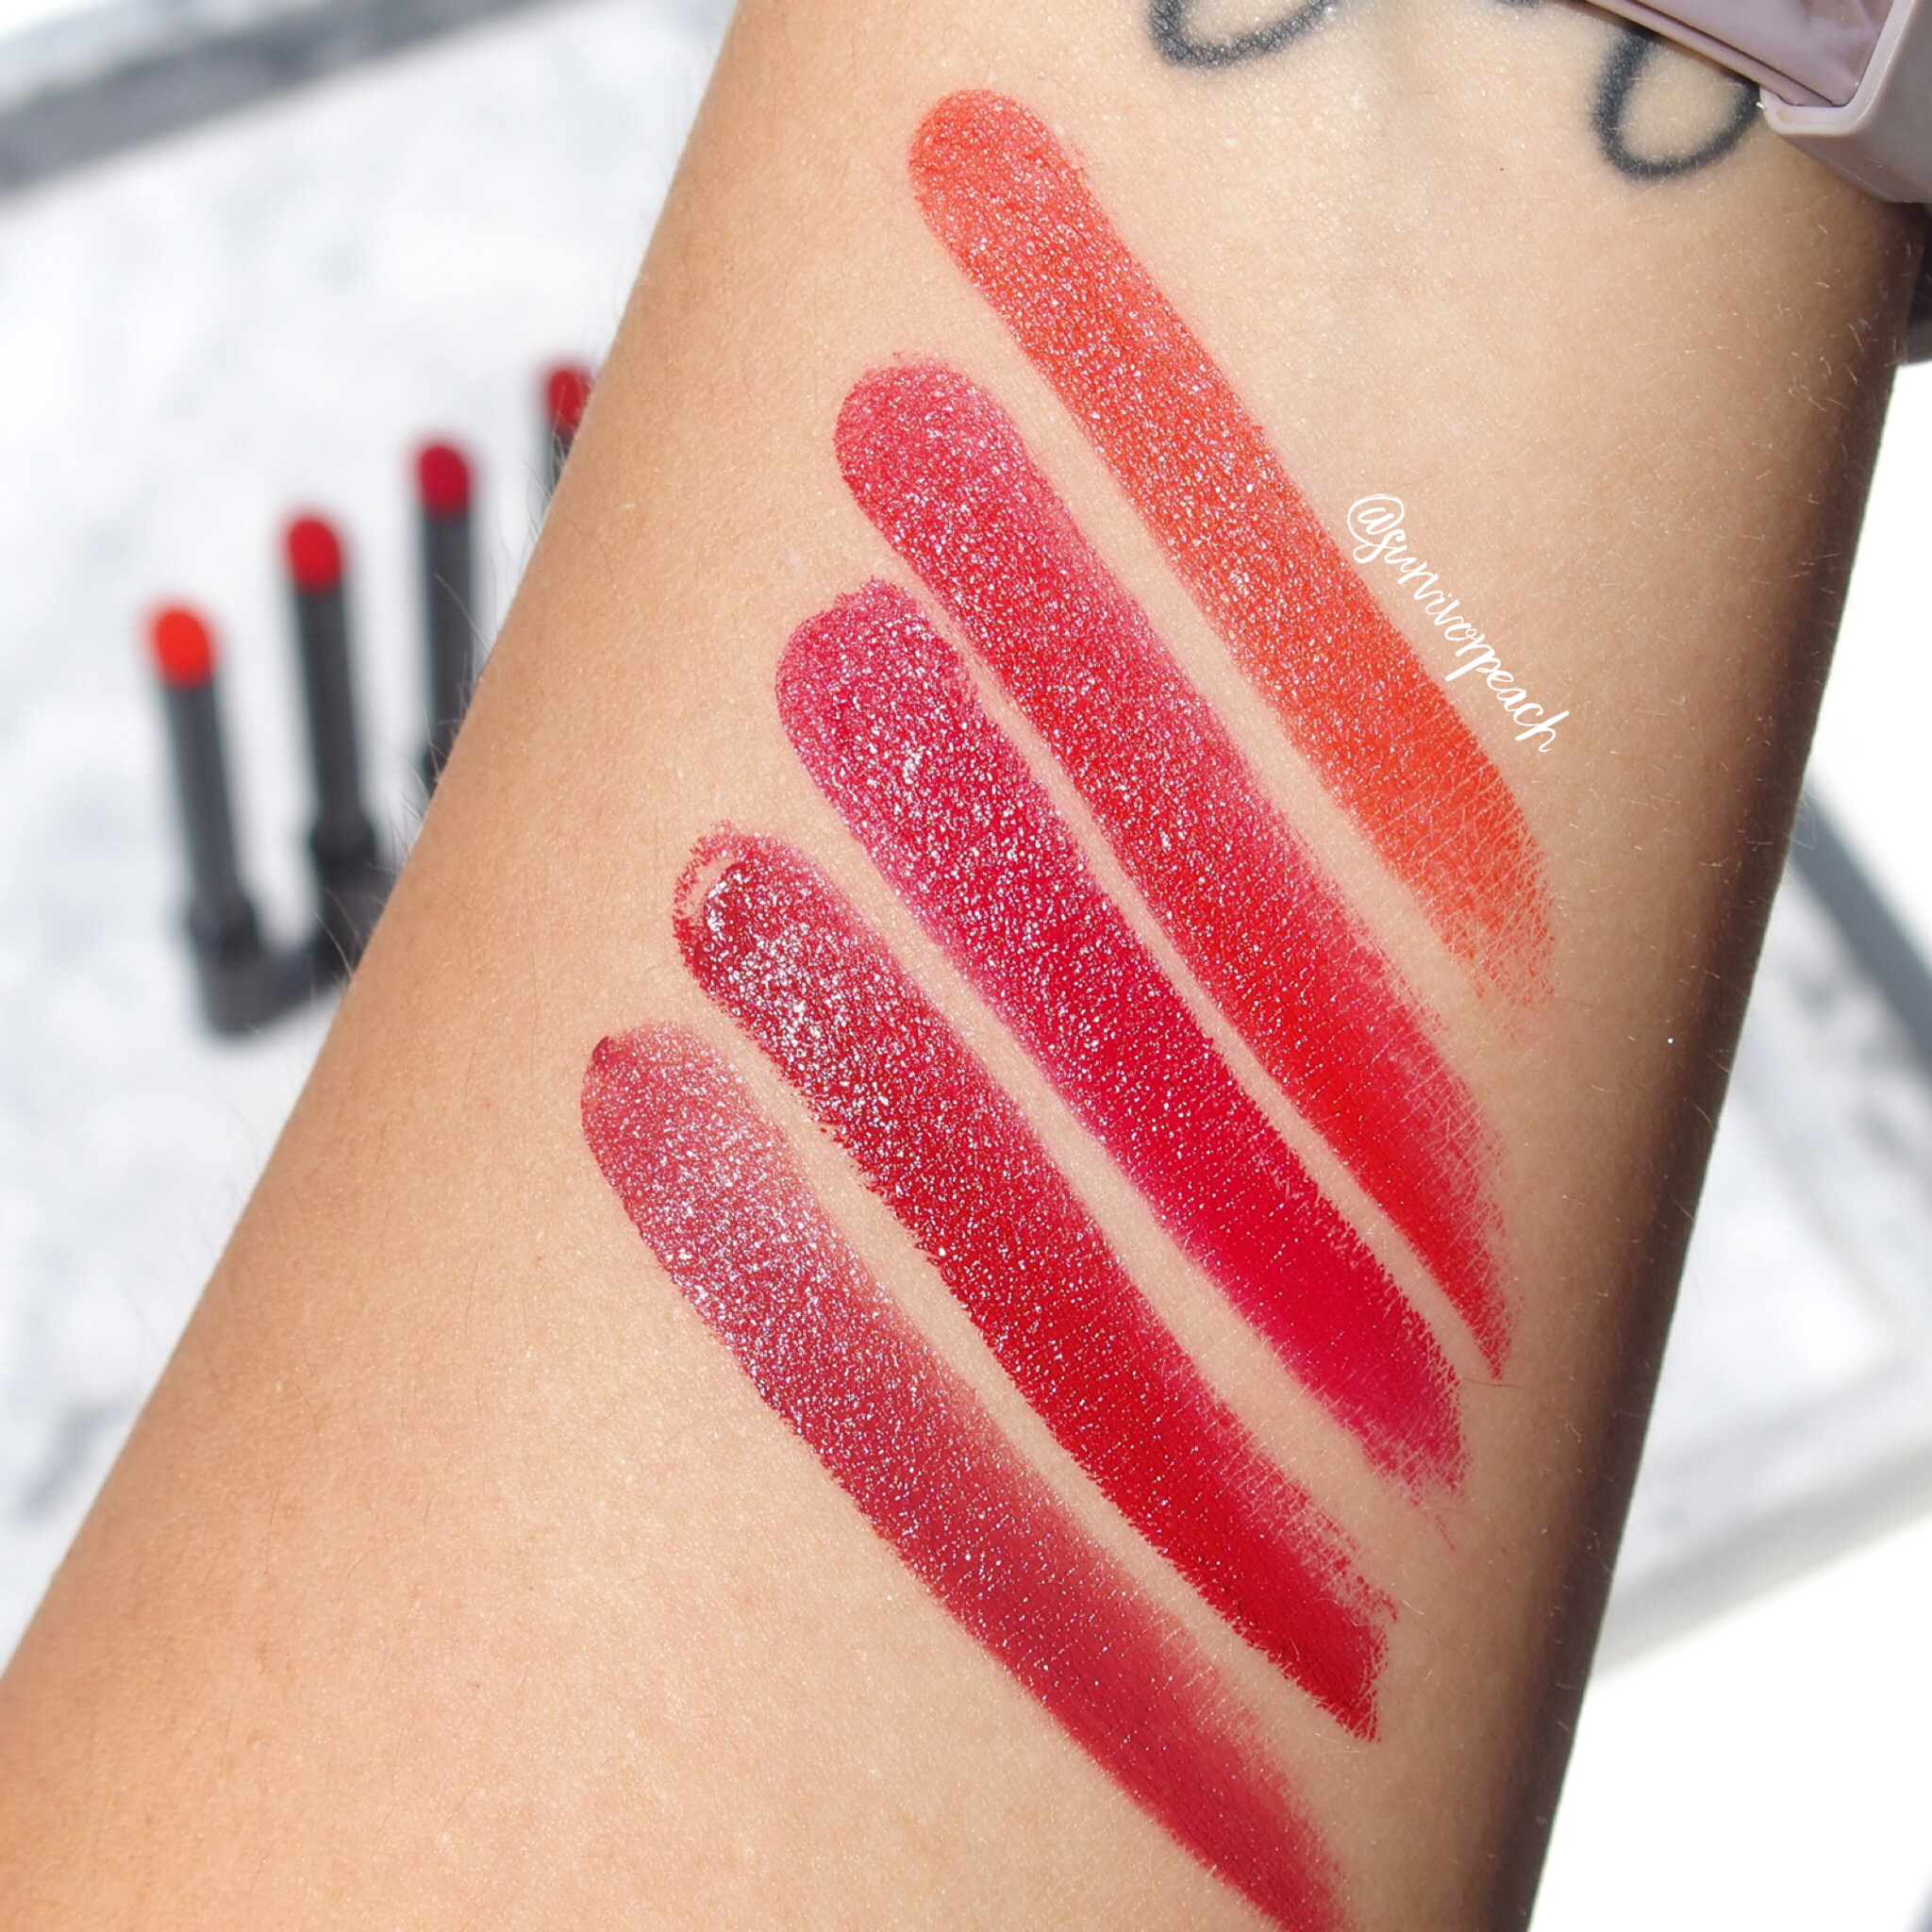 Swatches of the Hourglass Confession Lipsticks in shades I Desire, I Crave, My Icon Is, Secretly, I Can't Live Without